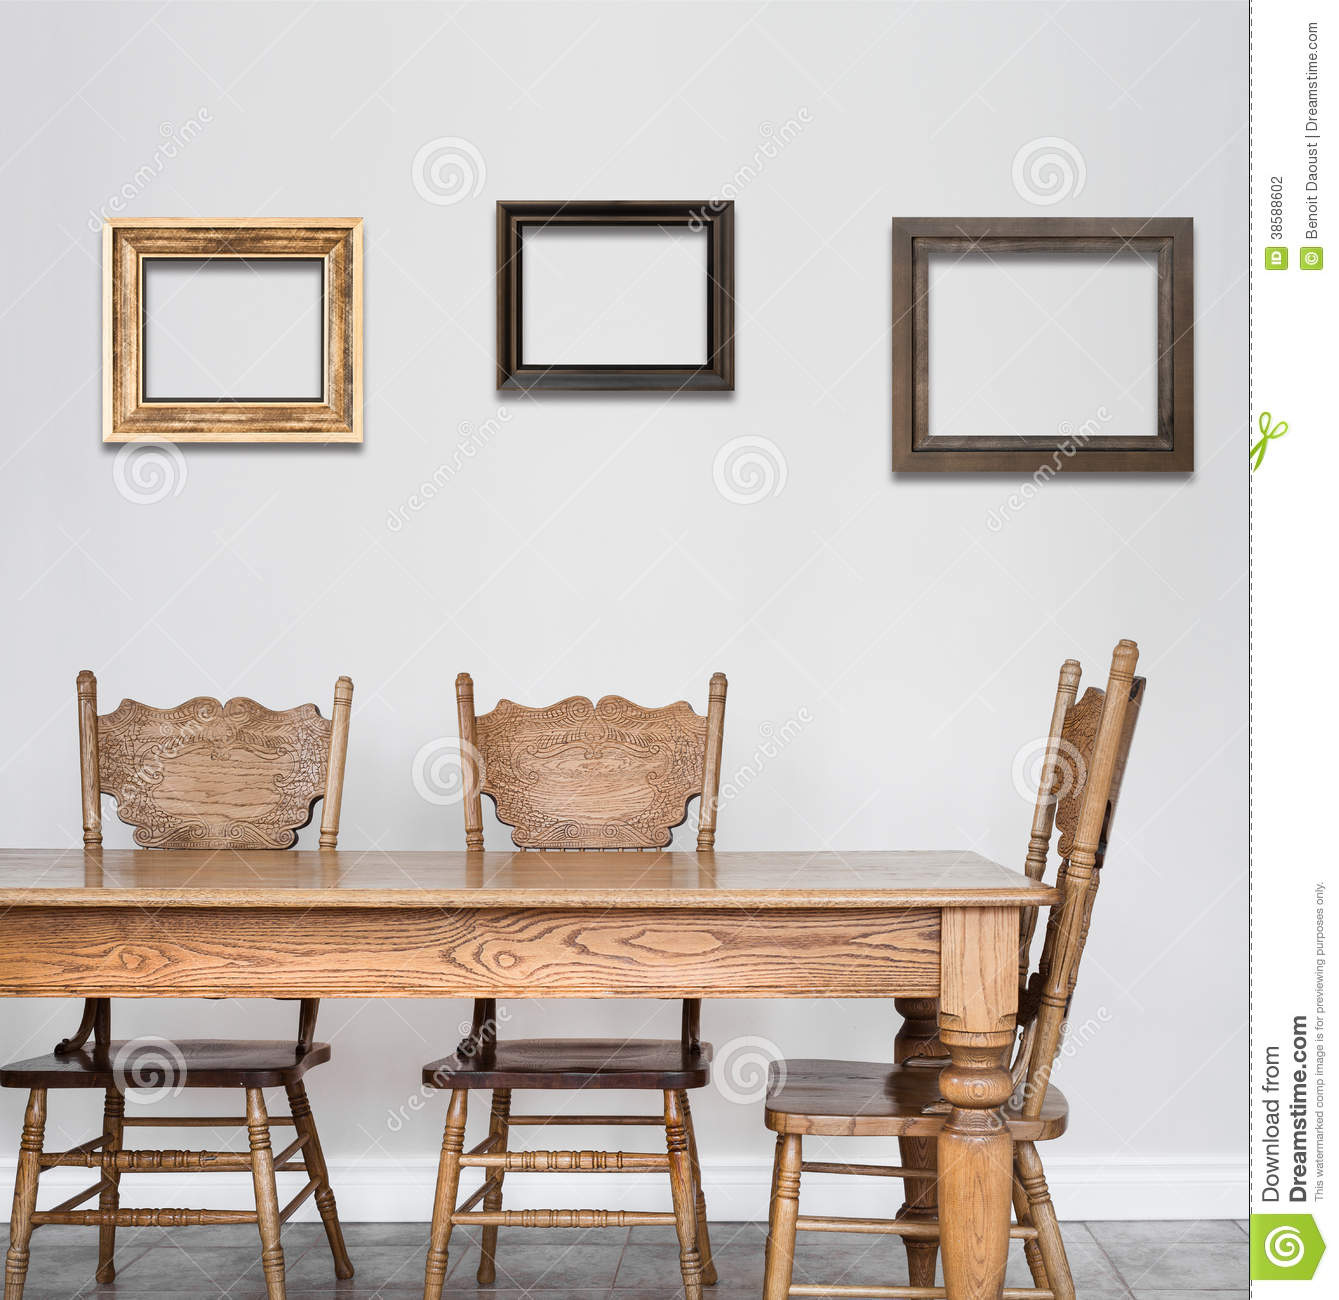 Wooden Dining Room Table And Chair Details Blank Frames For Your Text Image Or Logo Even Family Pictures